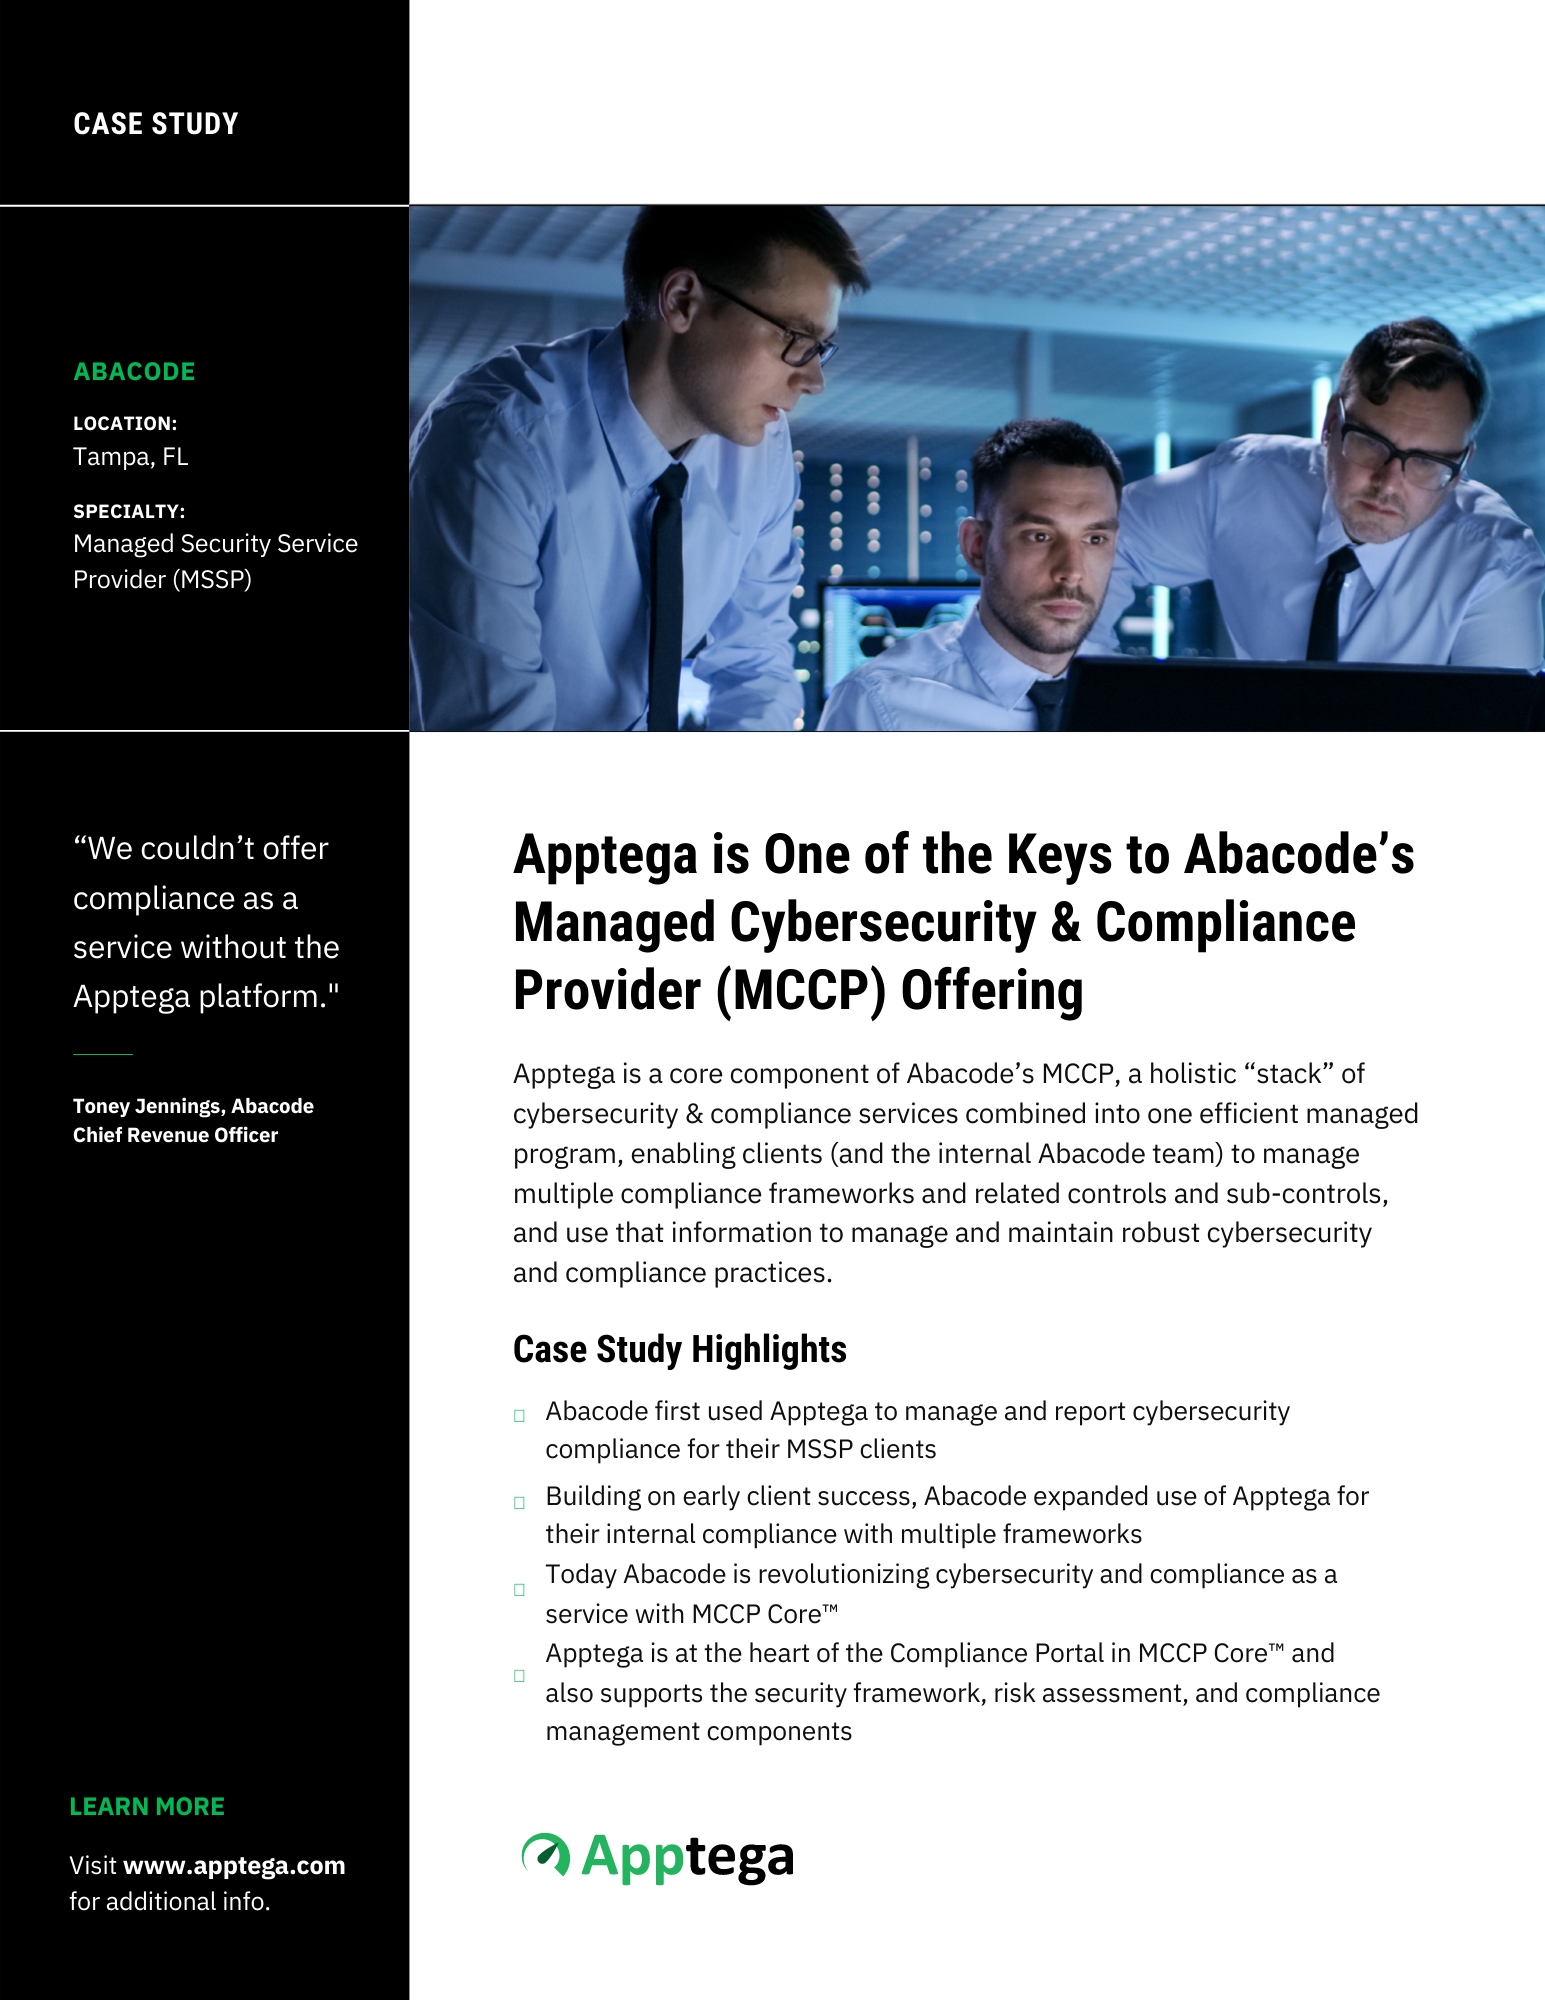 Abacode Case Study Cover Image